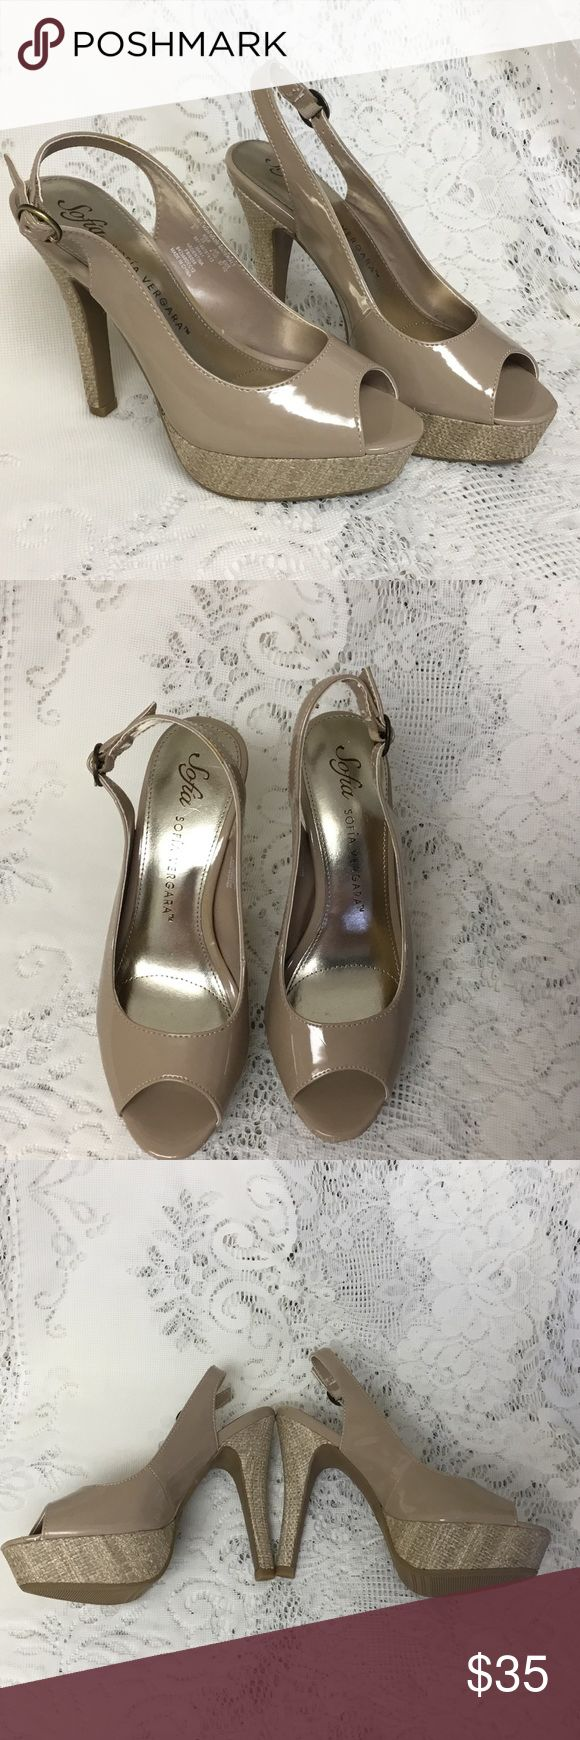 """Sofia Vergara taupe peep toe pump Sofia Vergara's taupe pumps are just what you need!  Chic and versatile, these shoes are one of a kind in classy cork and taupe.  They make your legs look long and sexy!  1 1/2"""" height at toe, 5"""" at back of heel. Sofia Vergara Shoes Heels"""